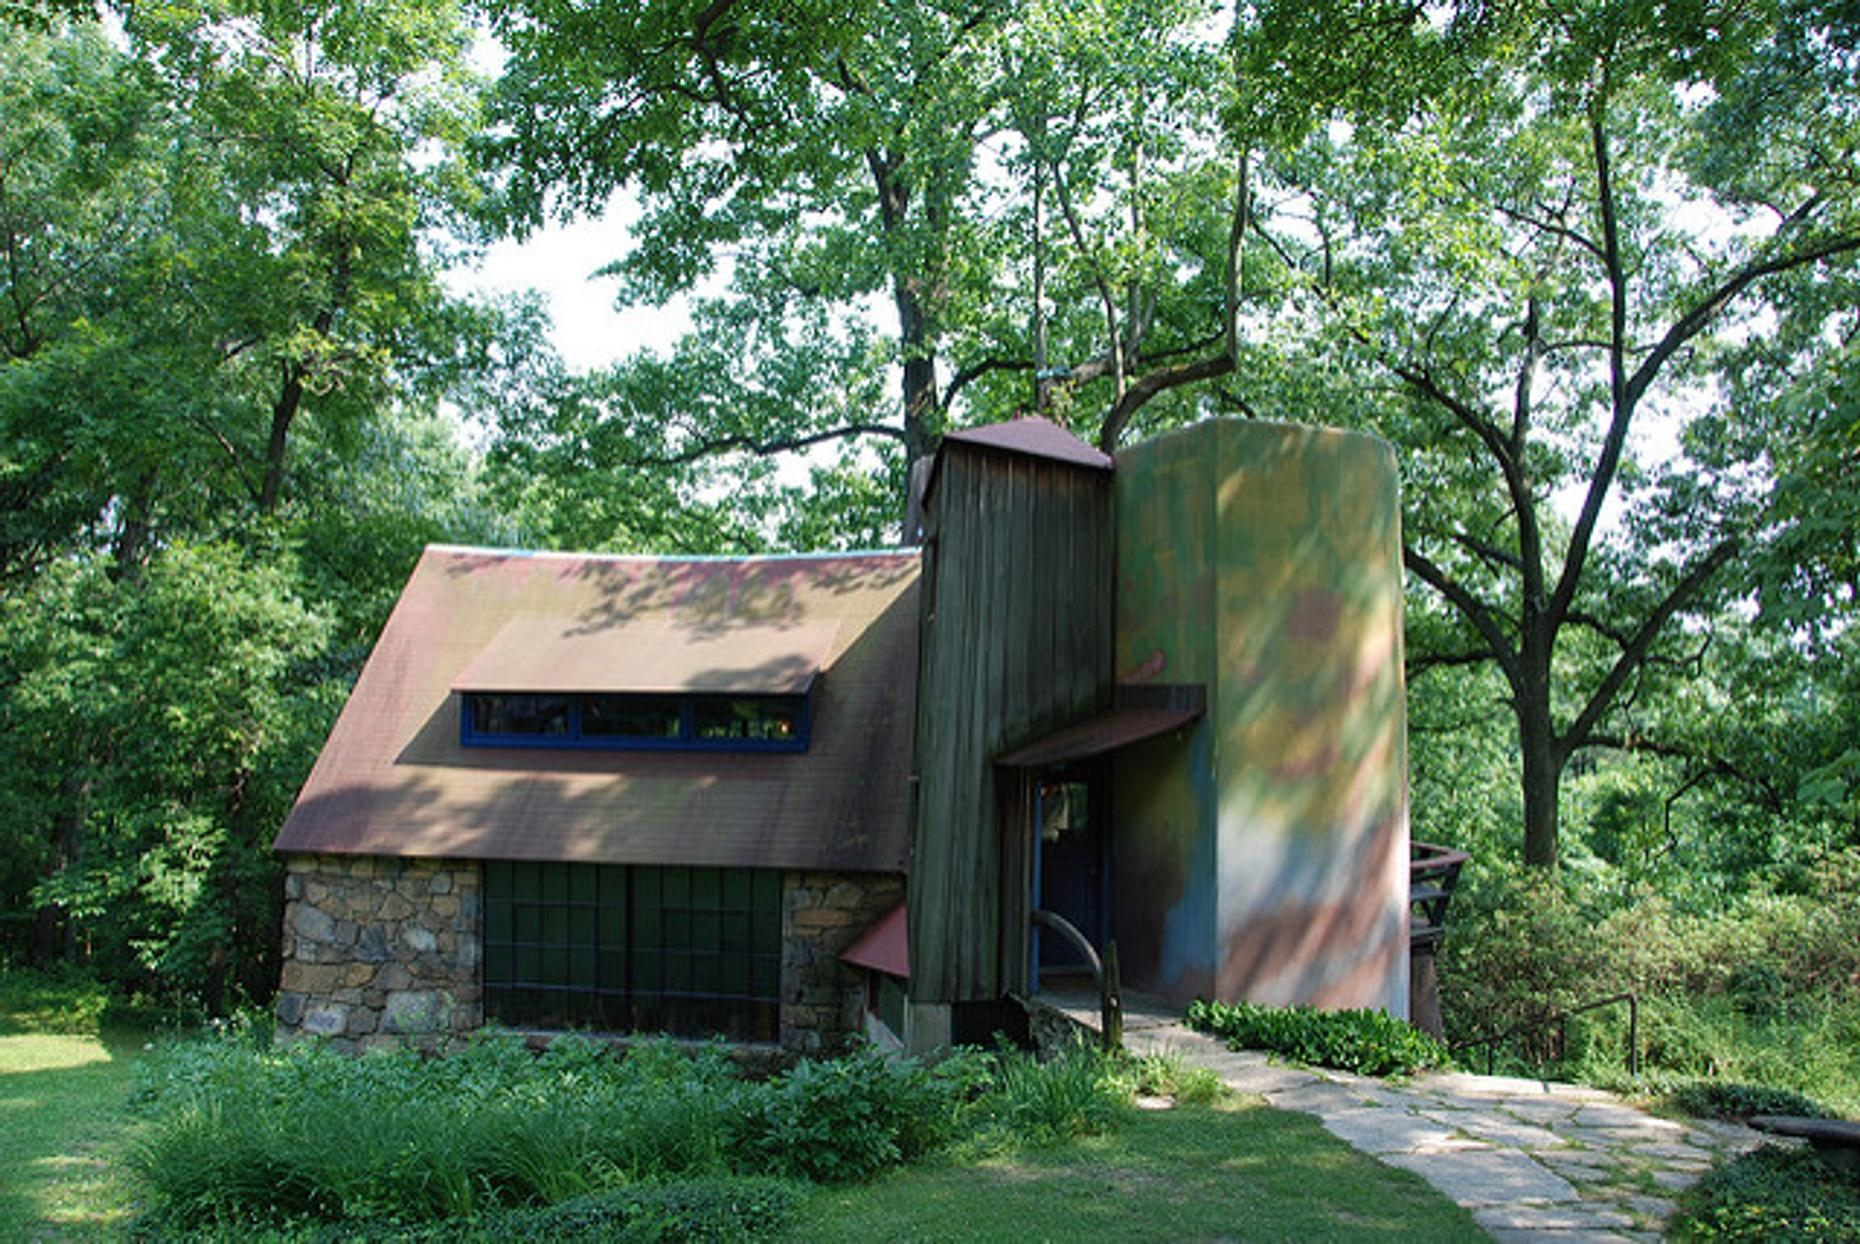 Wine and Cheese Tour at Wharton Esherick Museum